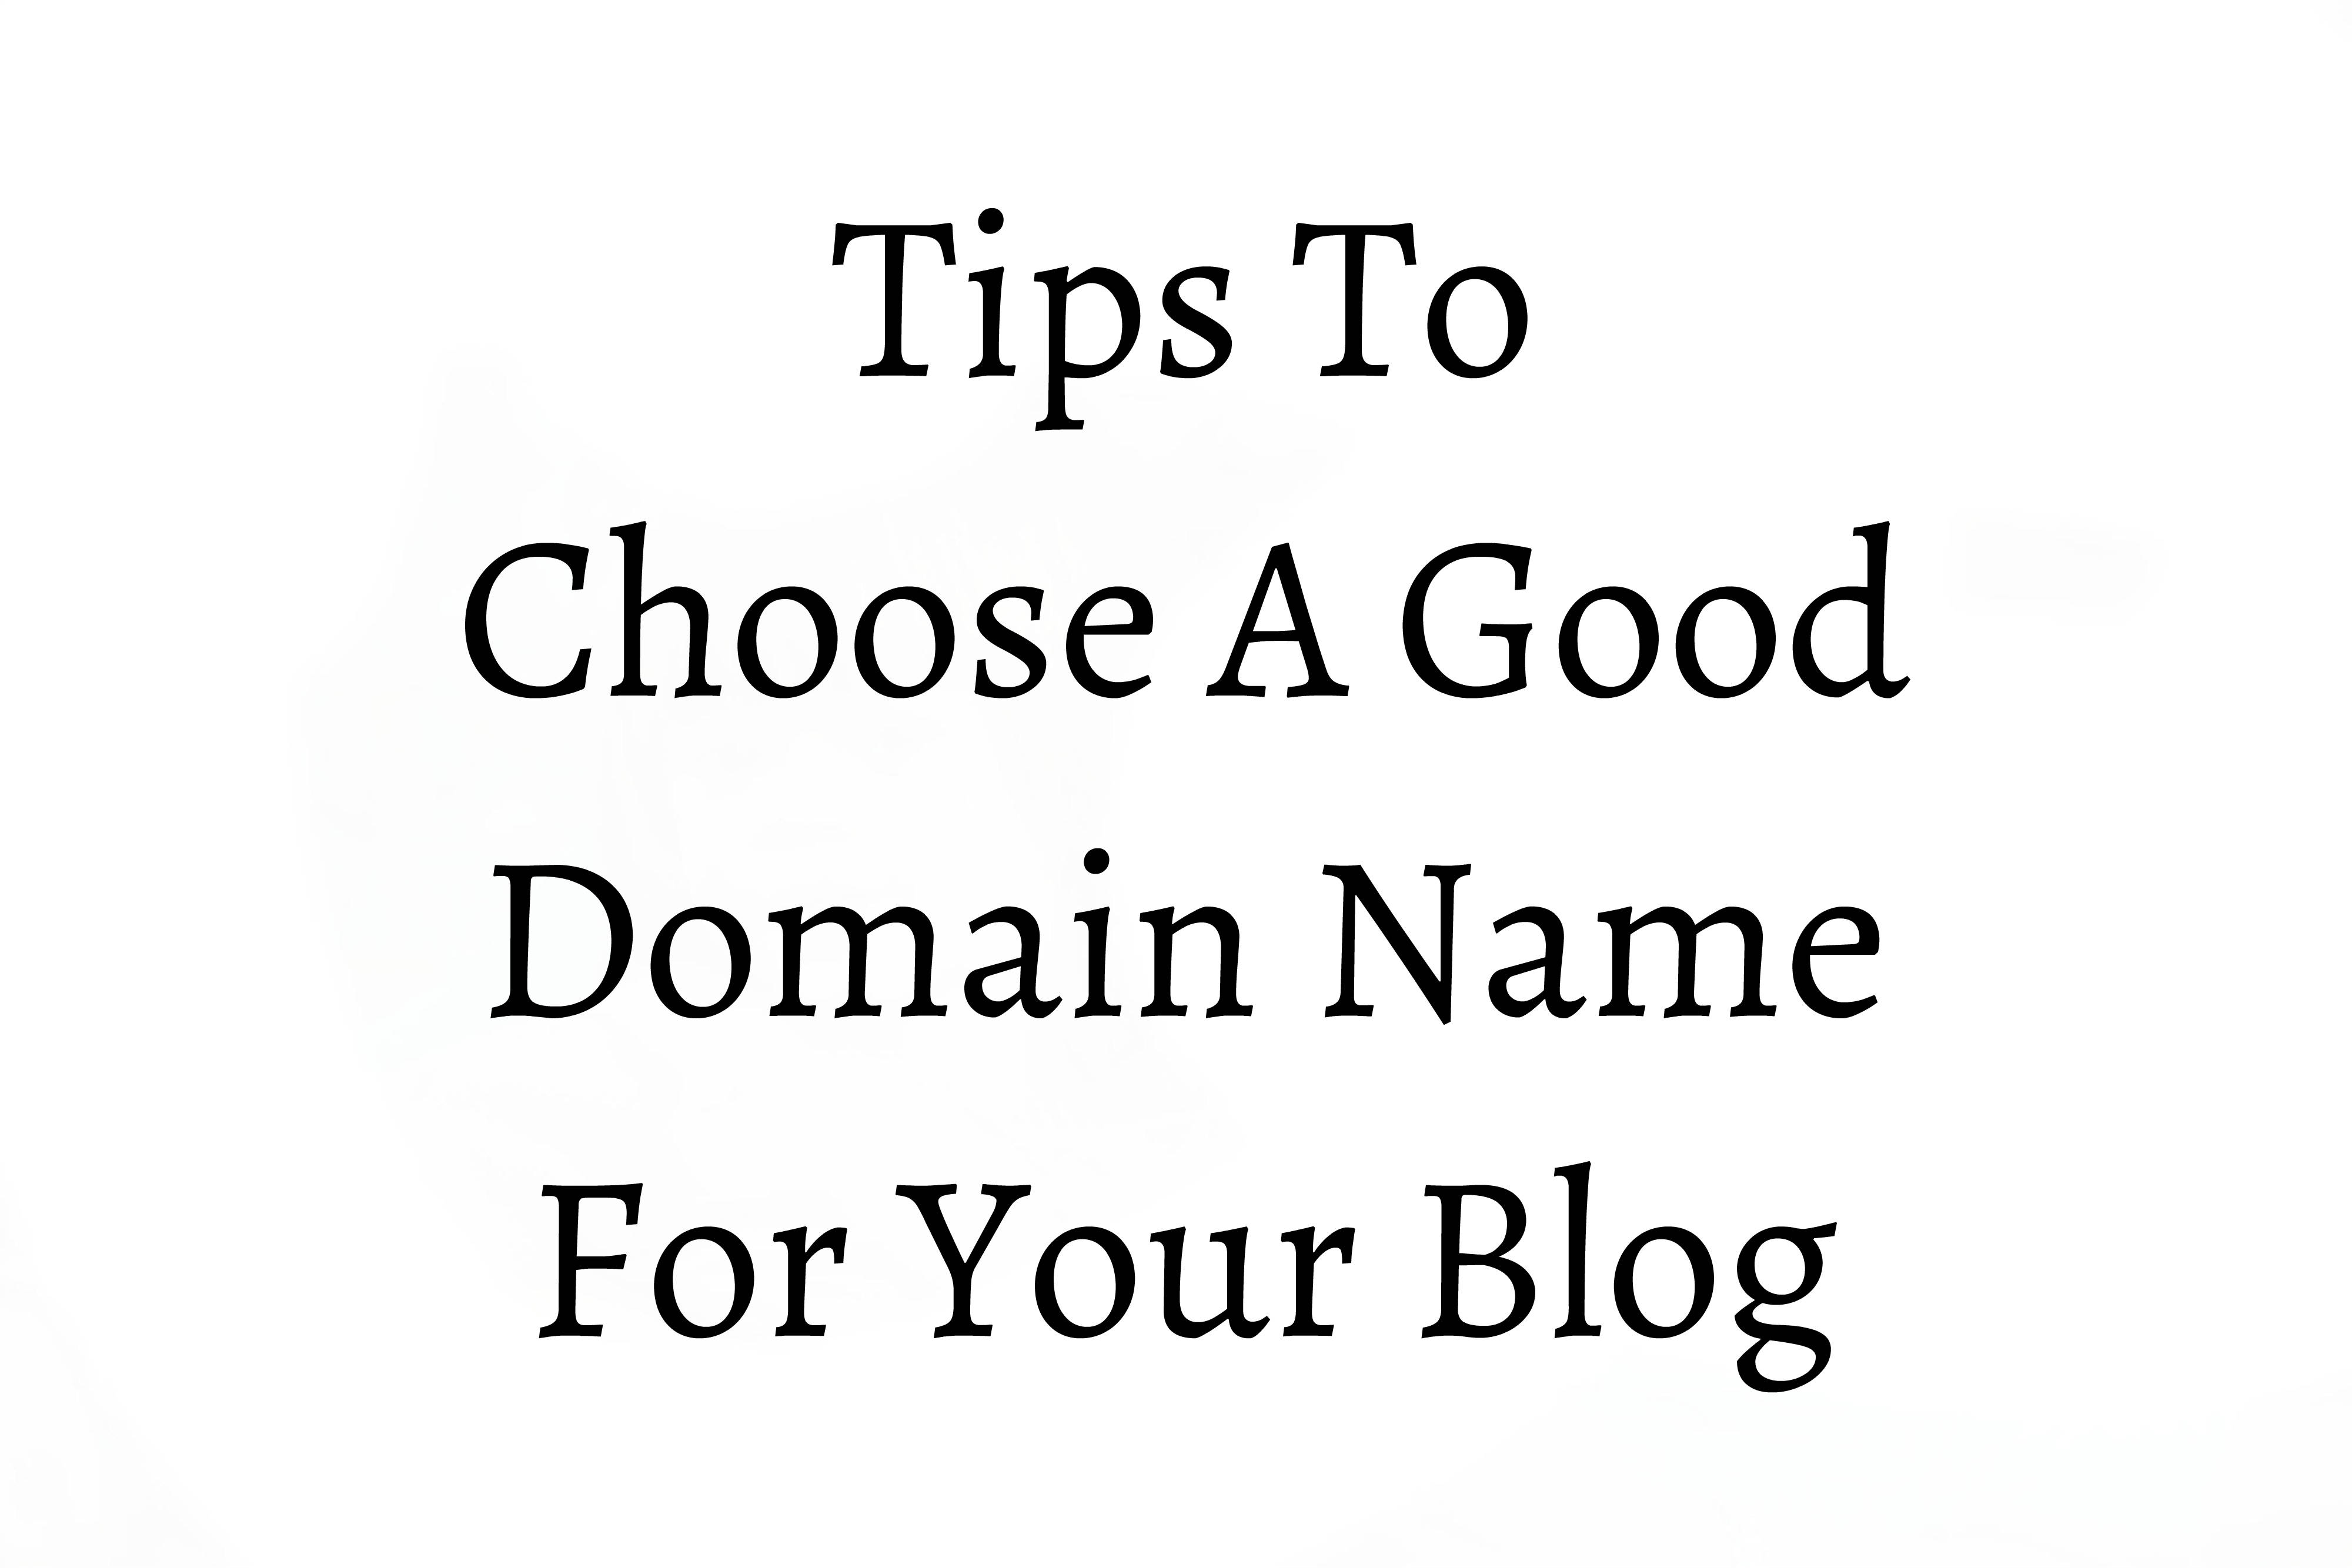 Tips Domain Name